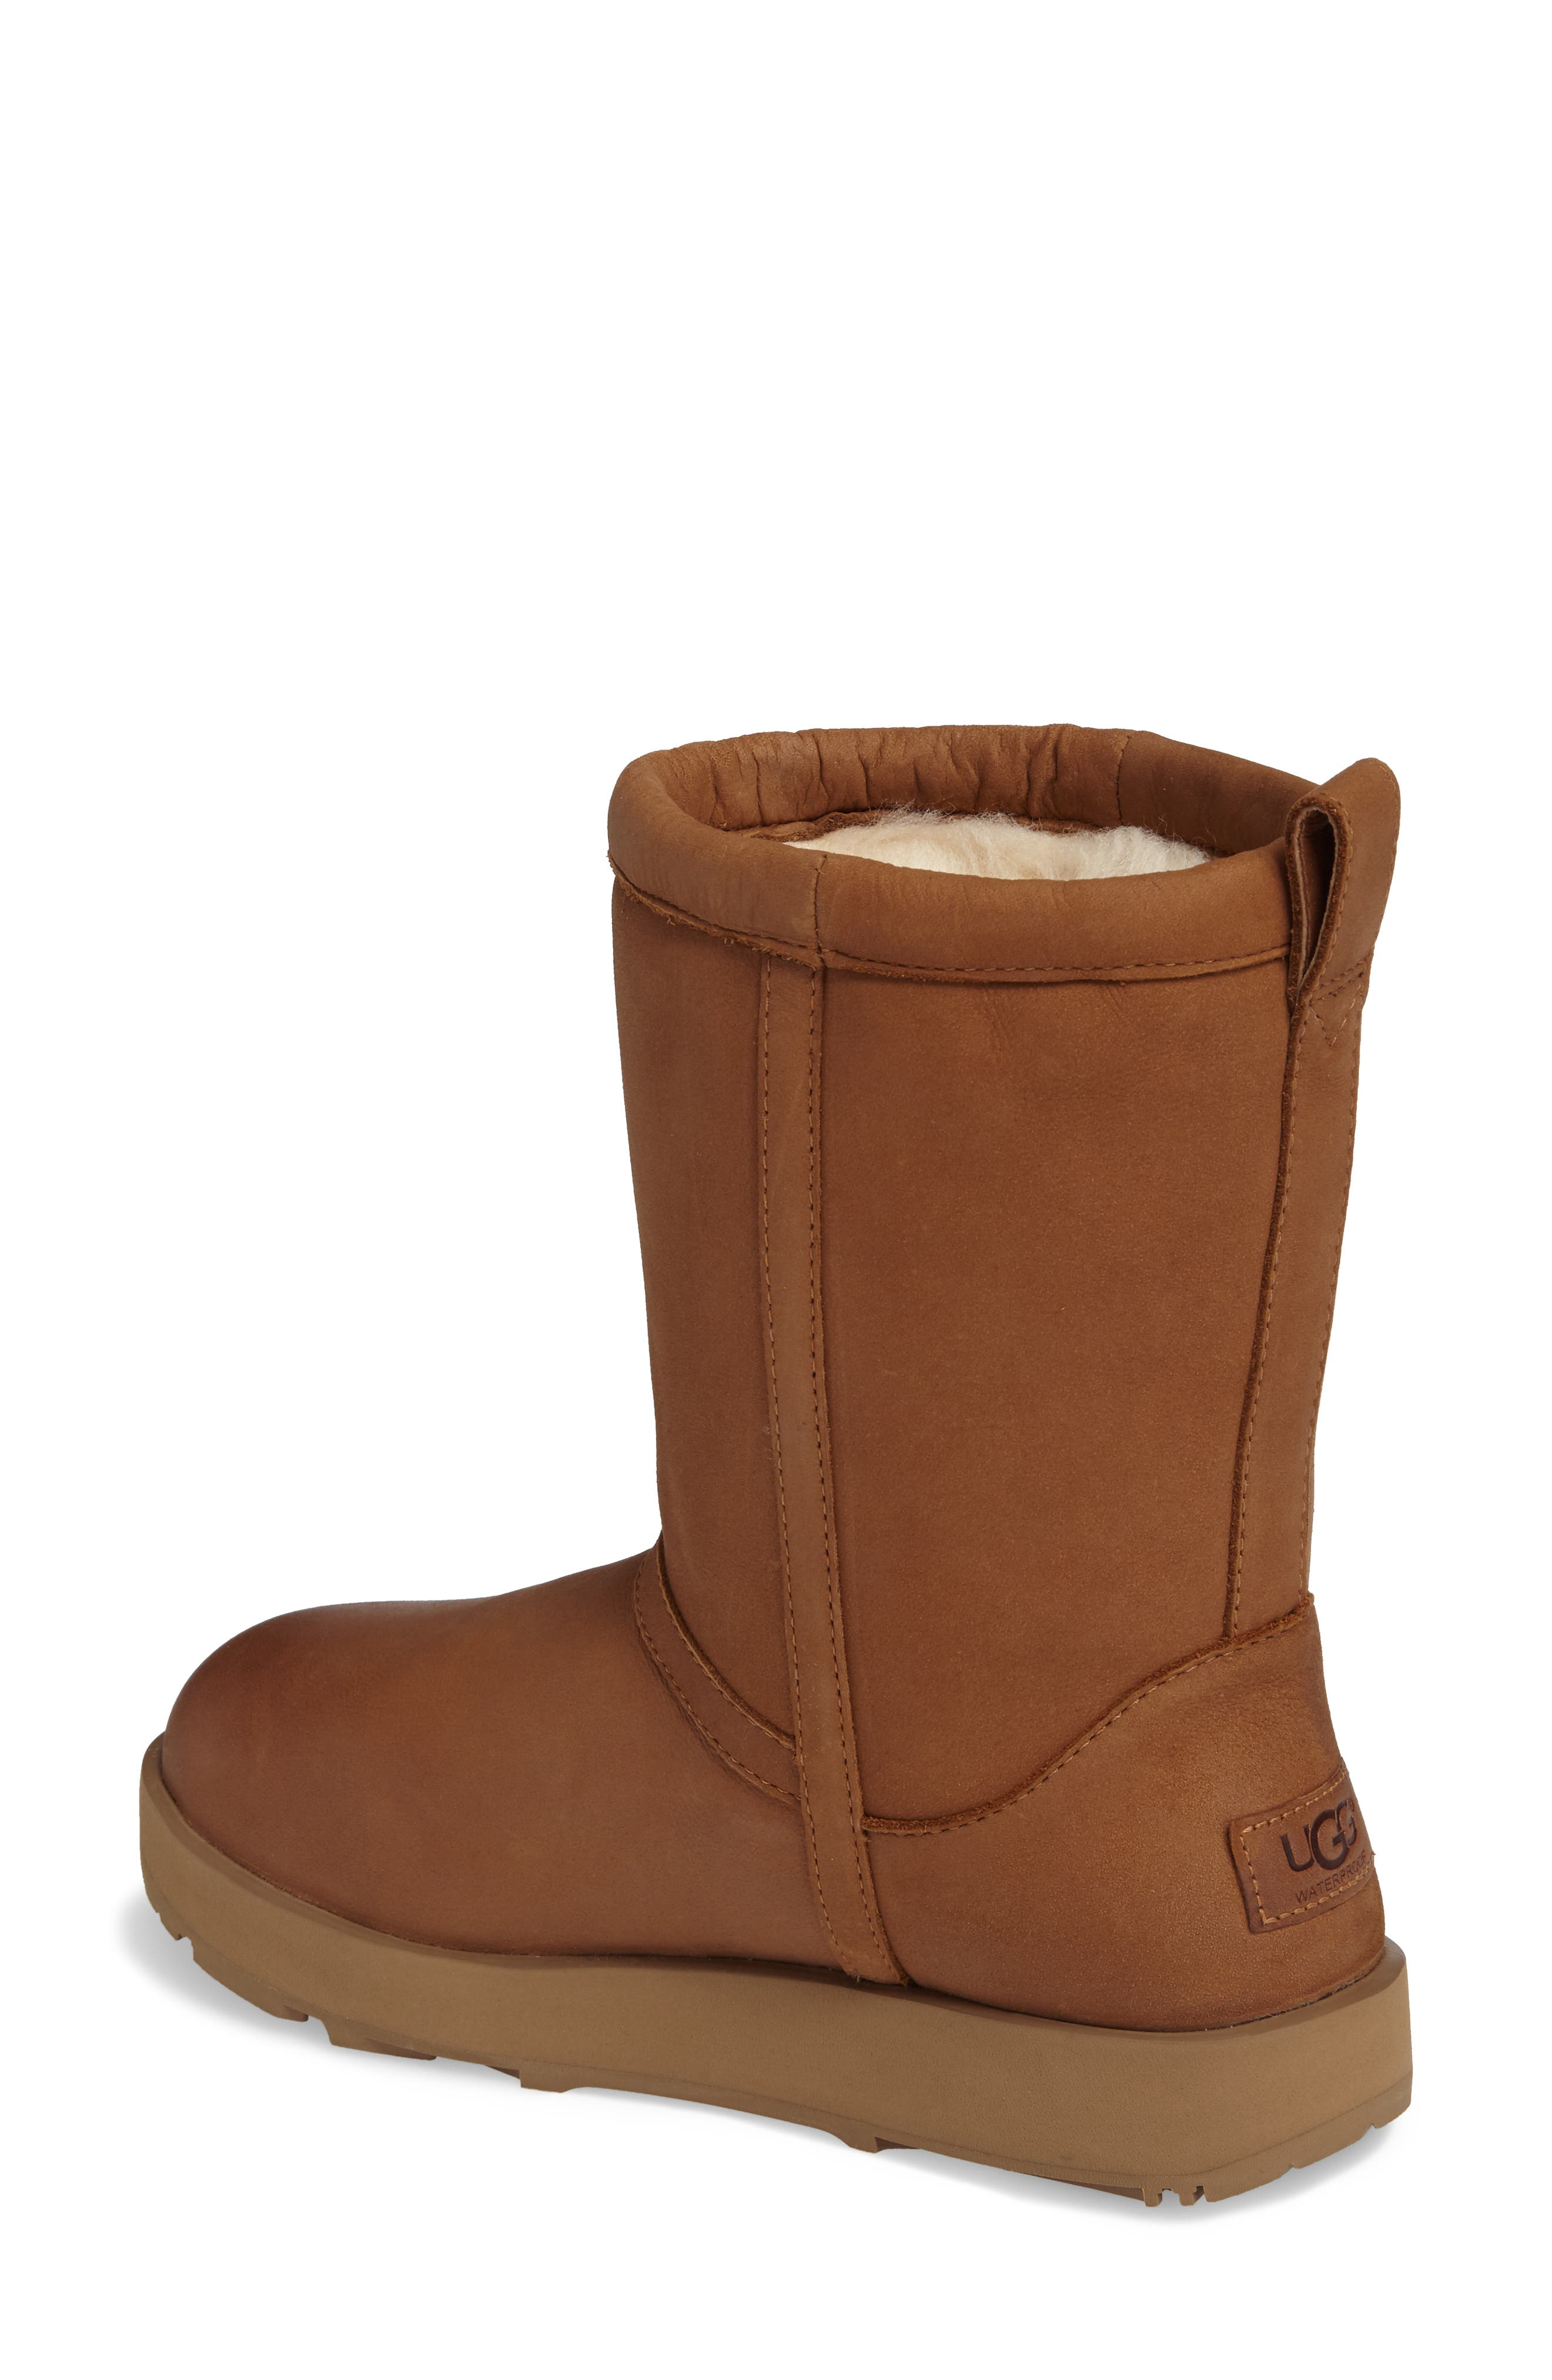 Classic Genuine Shearling Lined Short Waterproof Boot,                             Alternate thumbnail 2, color,                             Chestnut Leather